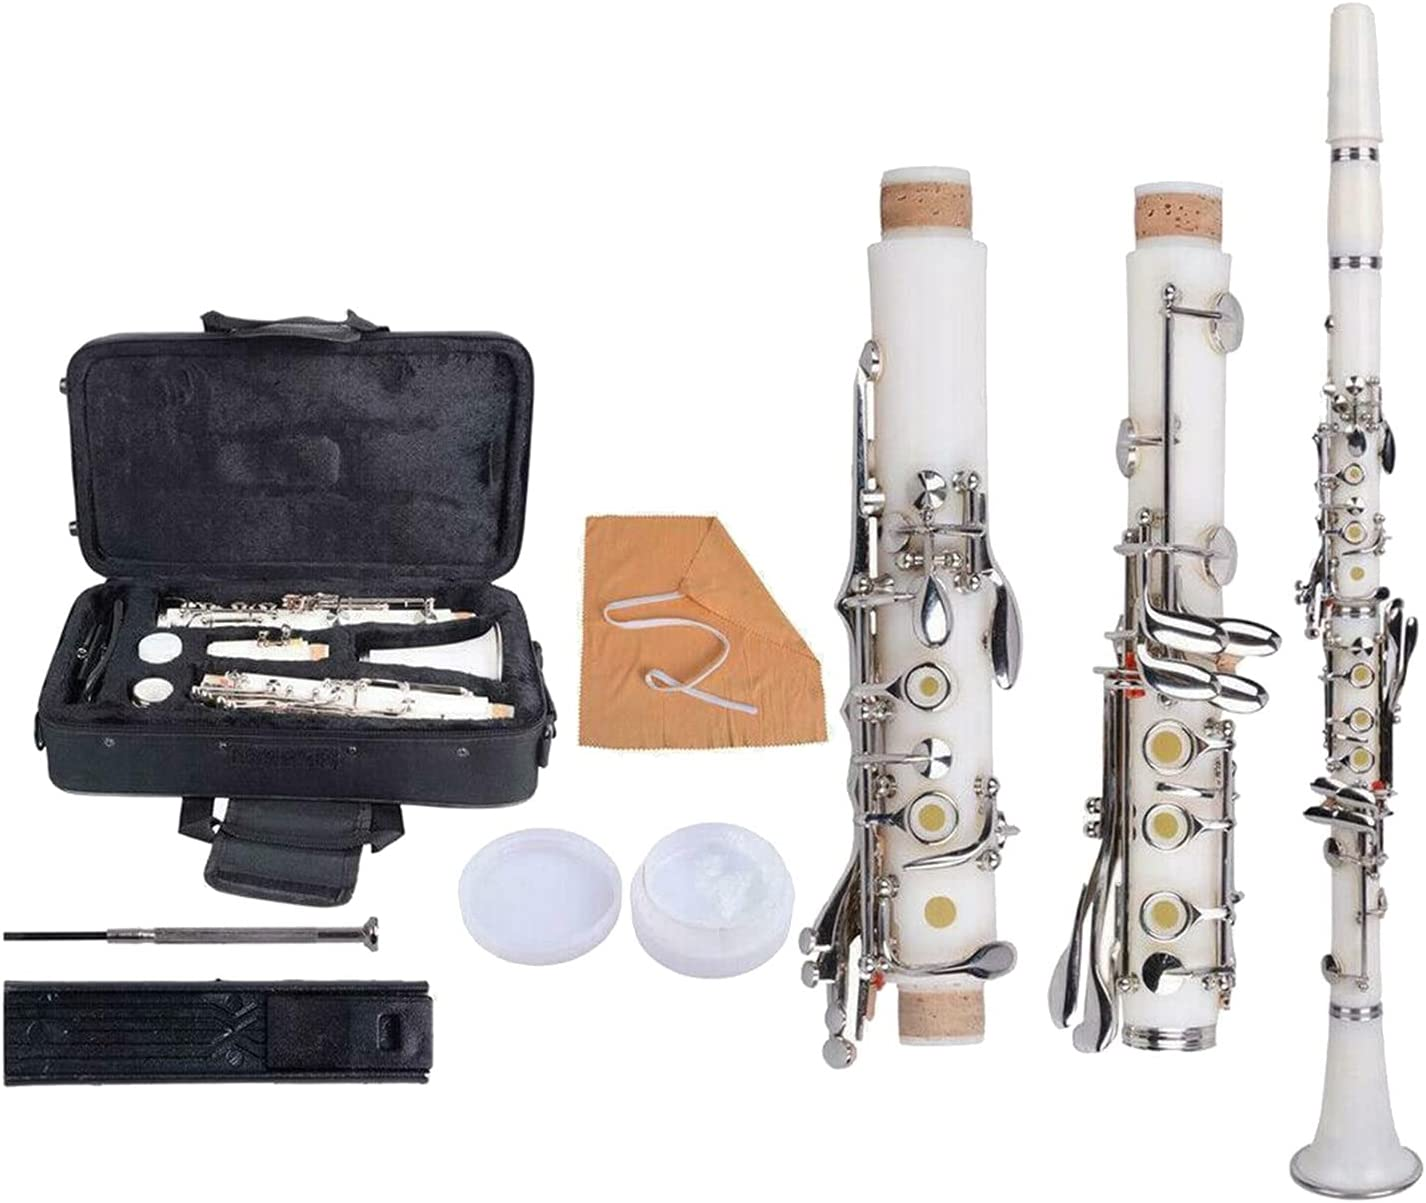 Clarinet B Flat with Sales Spasm price Case Musical Instruments Woo Reeds